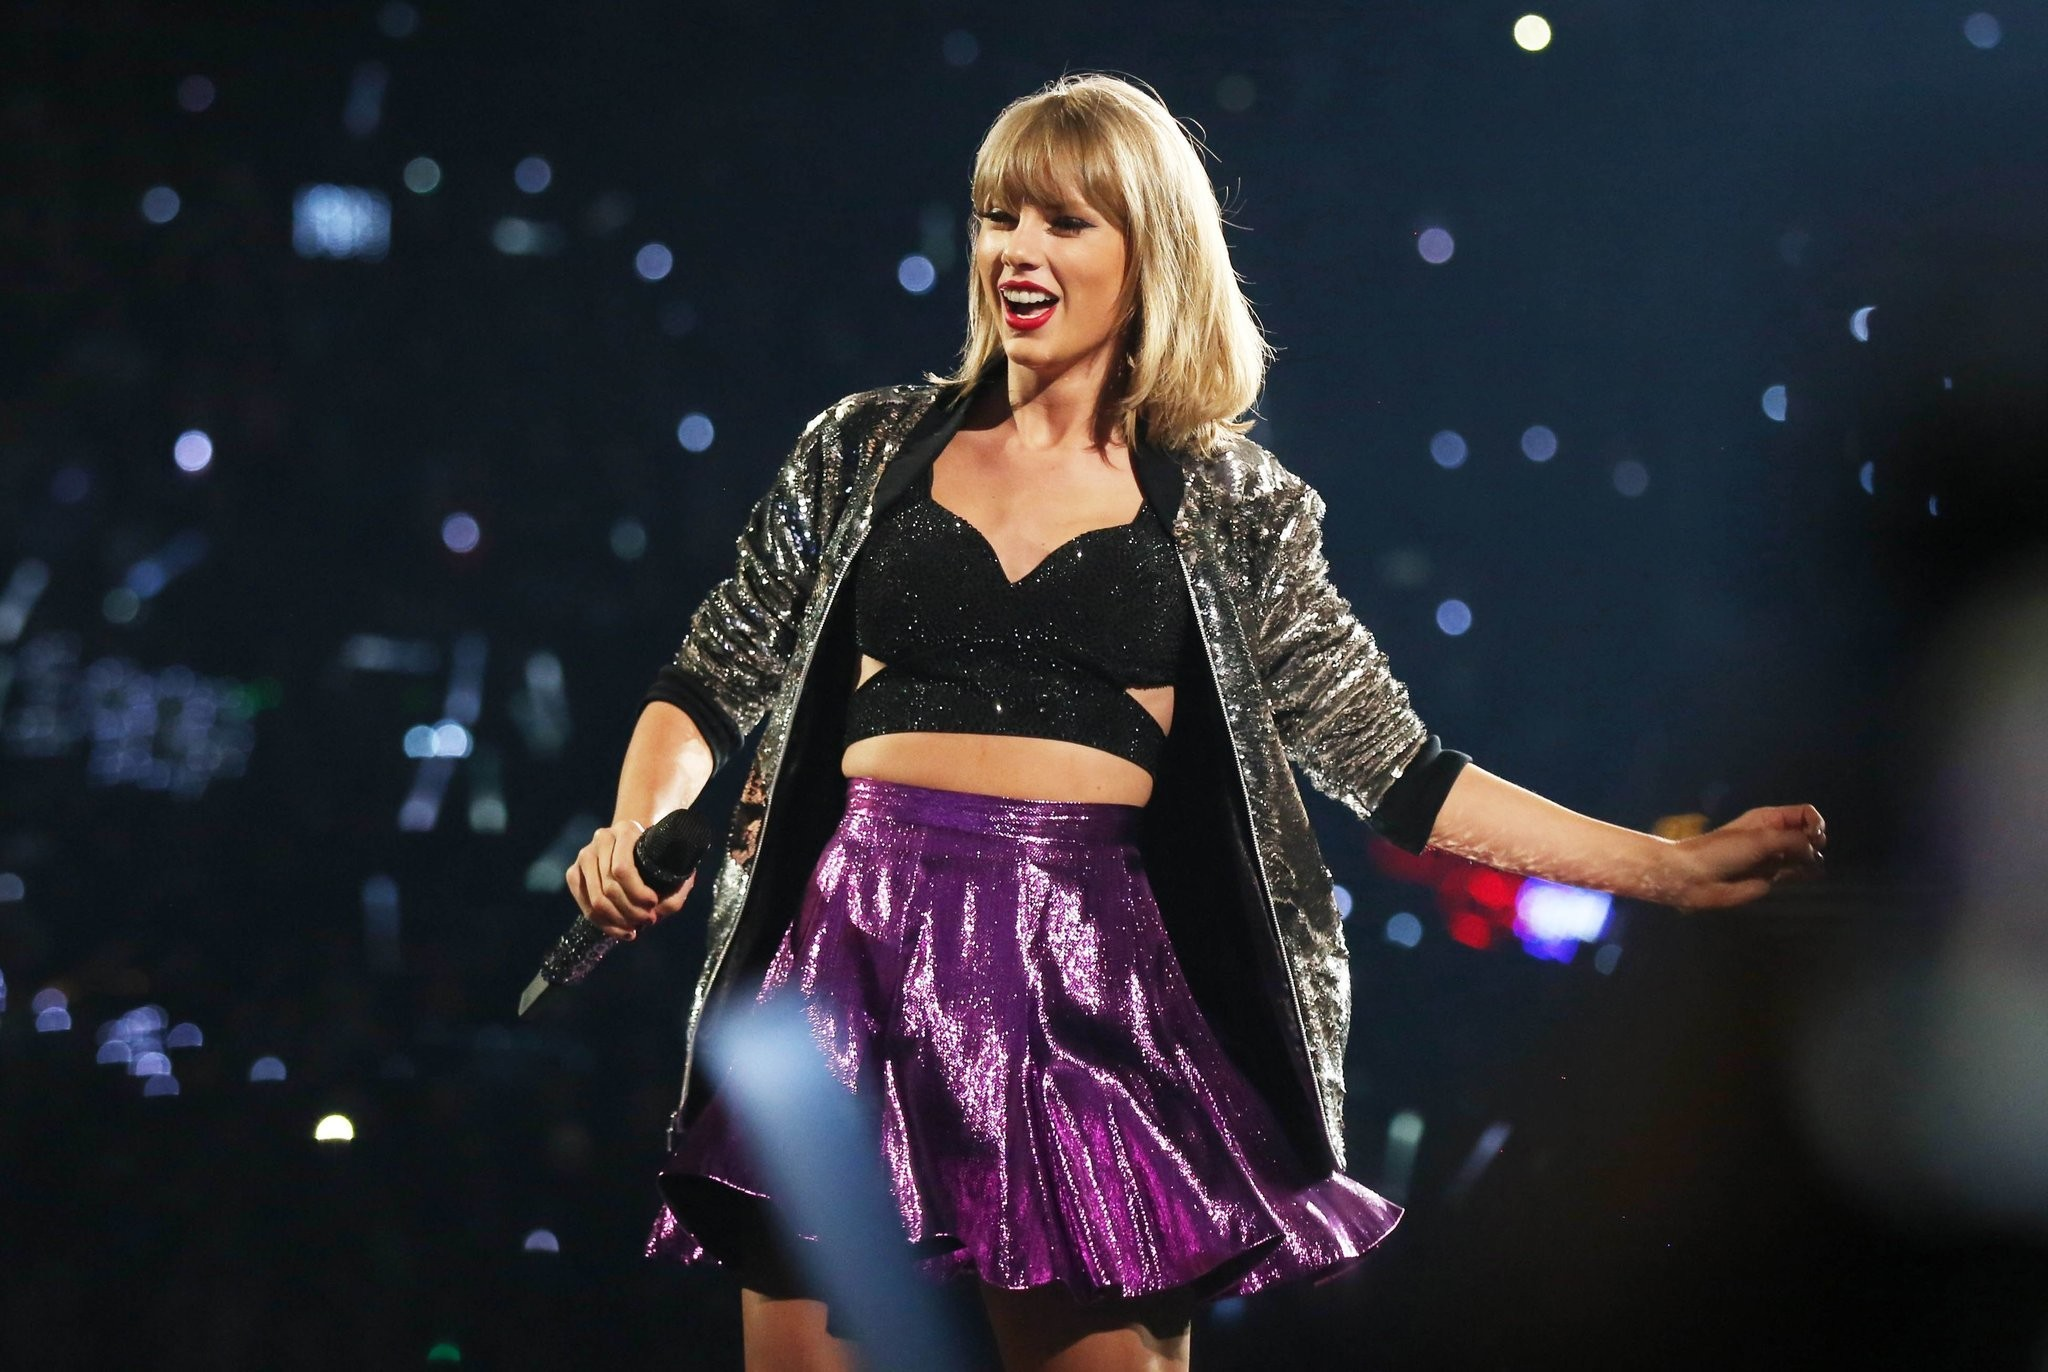 la-et-ms-taylor-swift-1989-tour-highest-grossing-concerts-pollstar-20151230